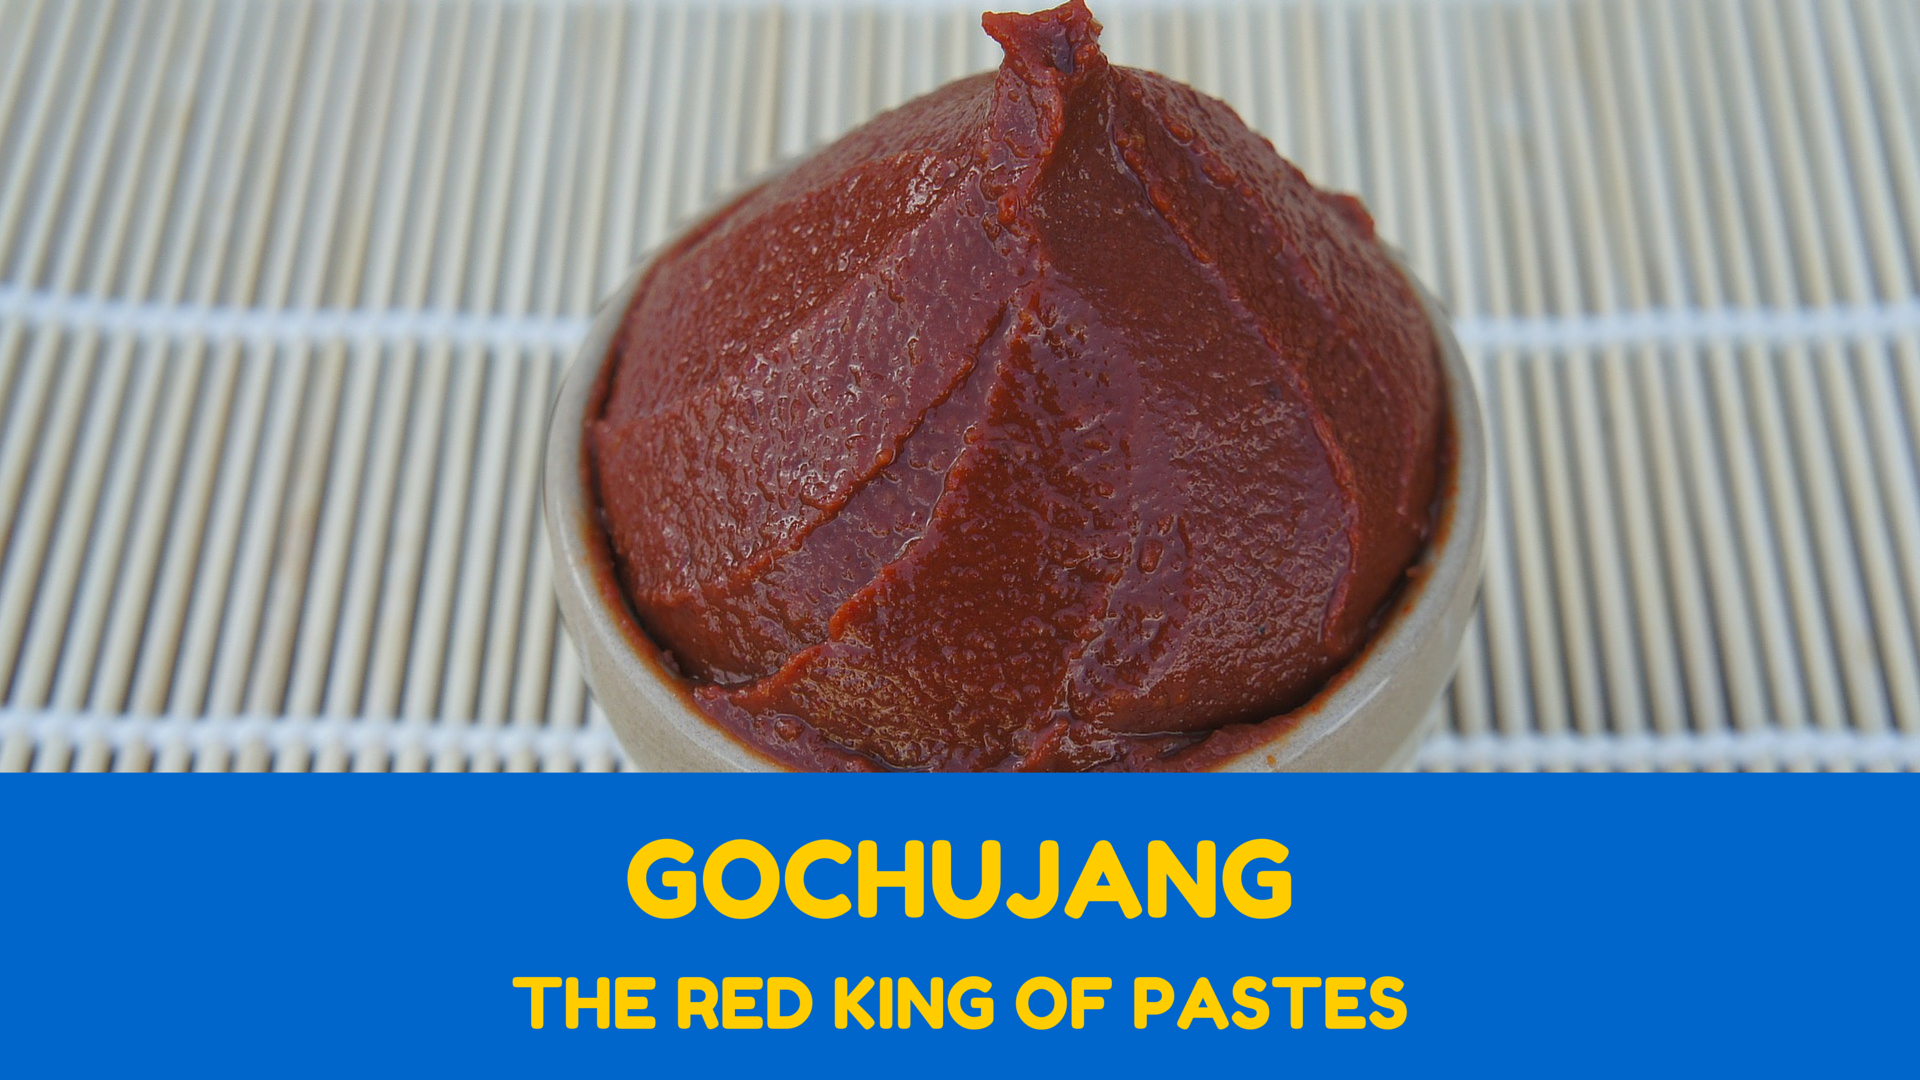 I am a difficult person when it comes to eating. I do not enjoy eating a lot of things, but sometimes I taste something and I immediately wonder where that thing has been my entire life. One of those moments was when I first tasted gochujang (고추장), Korean red chili paste.